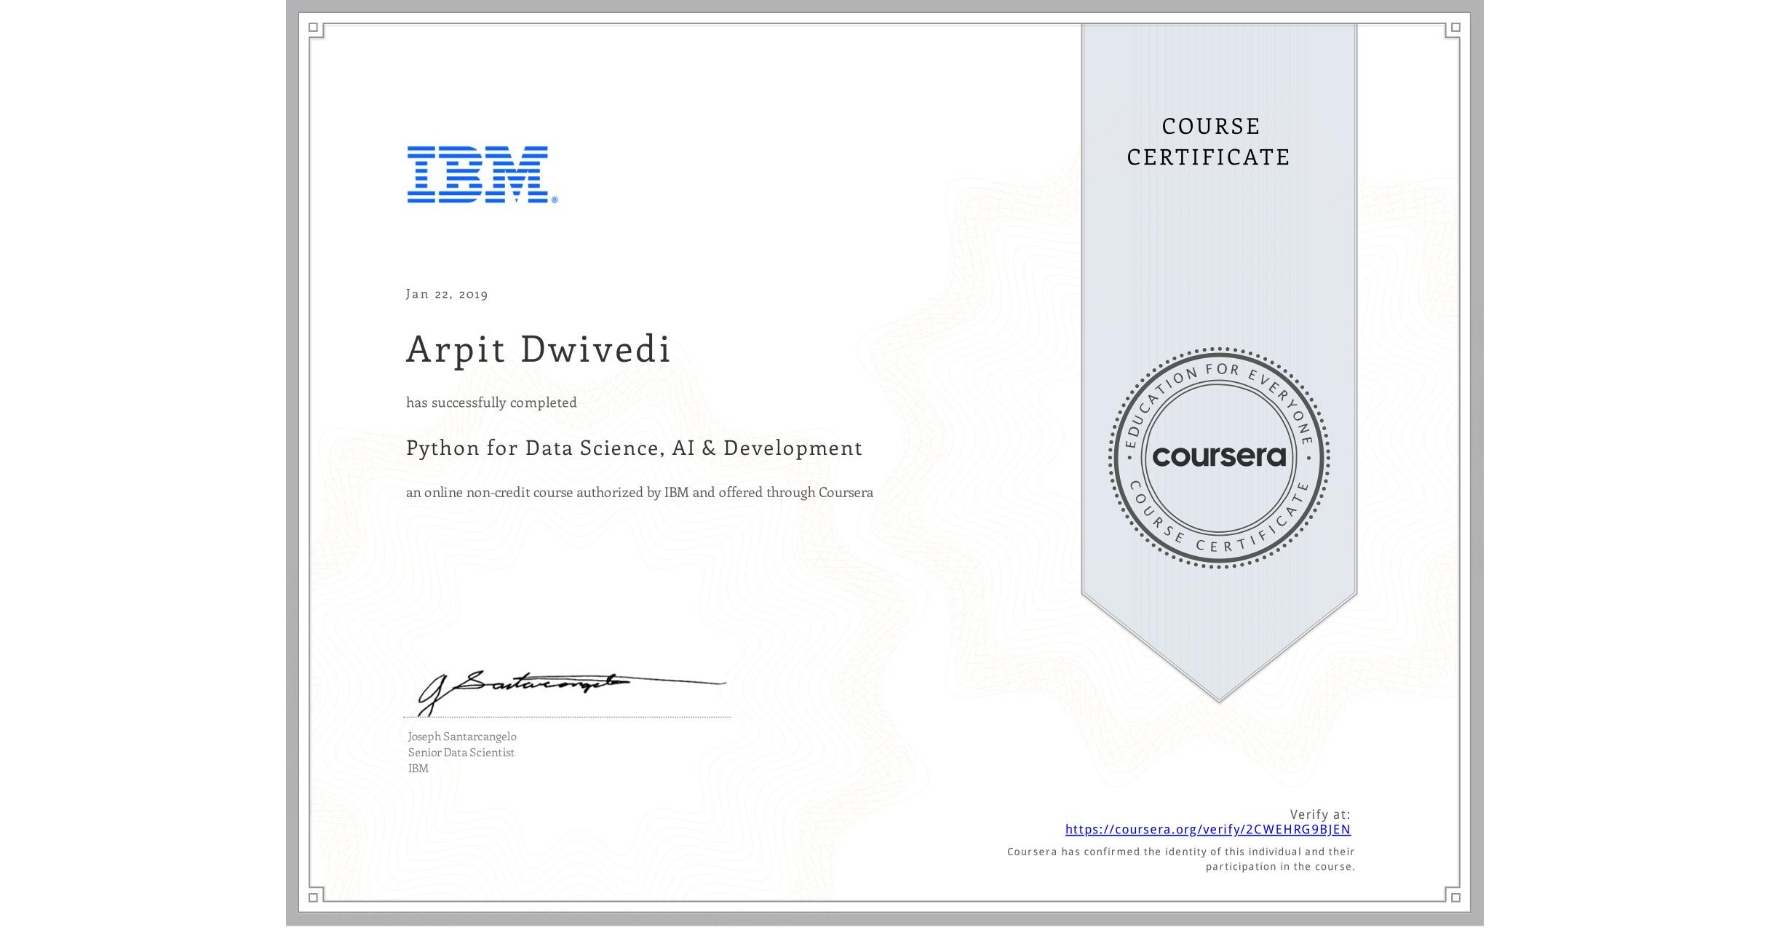 View certificate for Arpit Dwivedi, Python for Data Science, AI & Development, an online non-credit course authorized by IBM and offered through Coursera